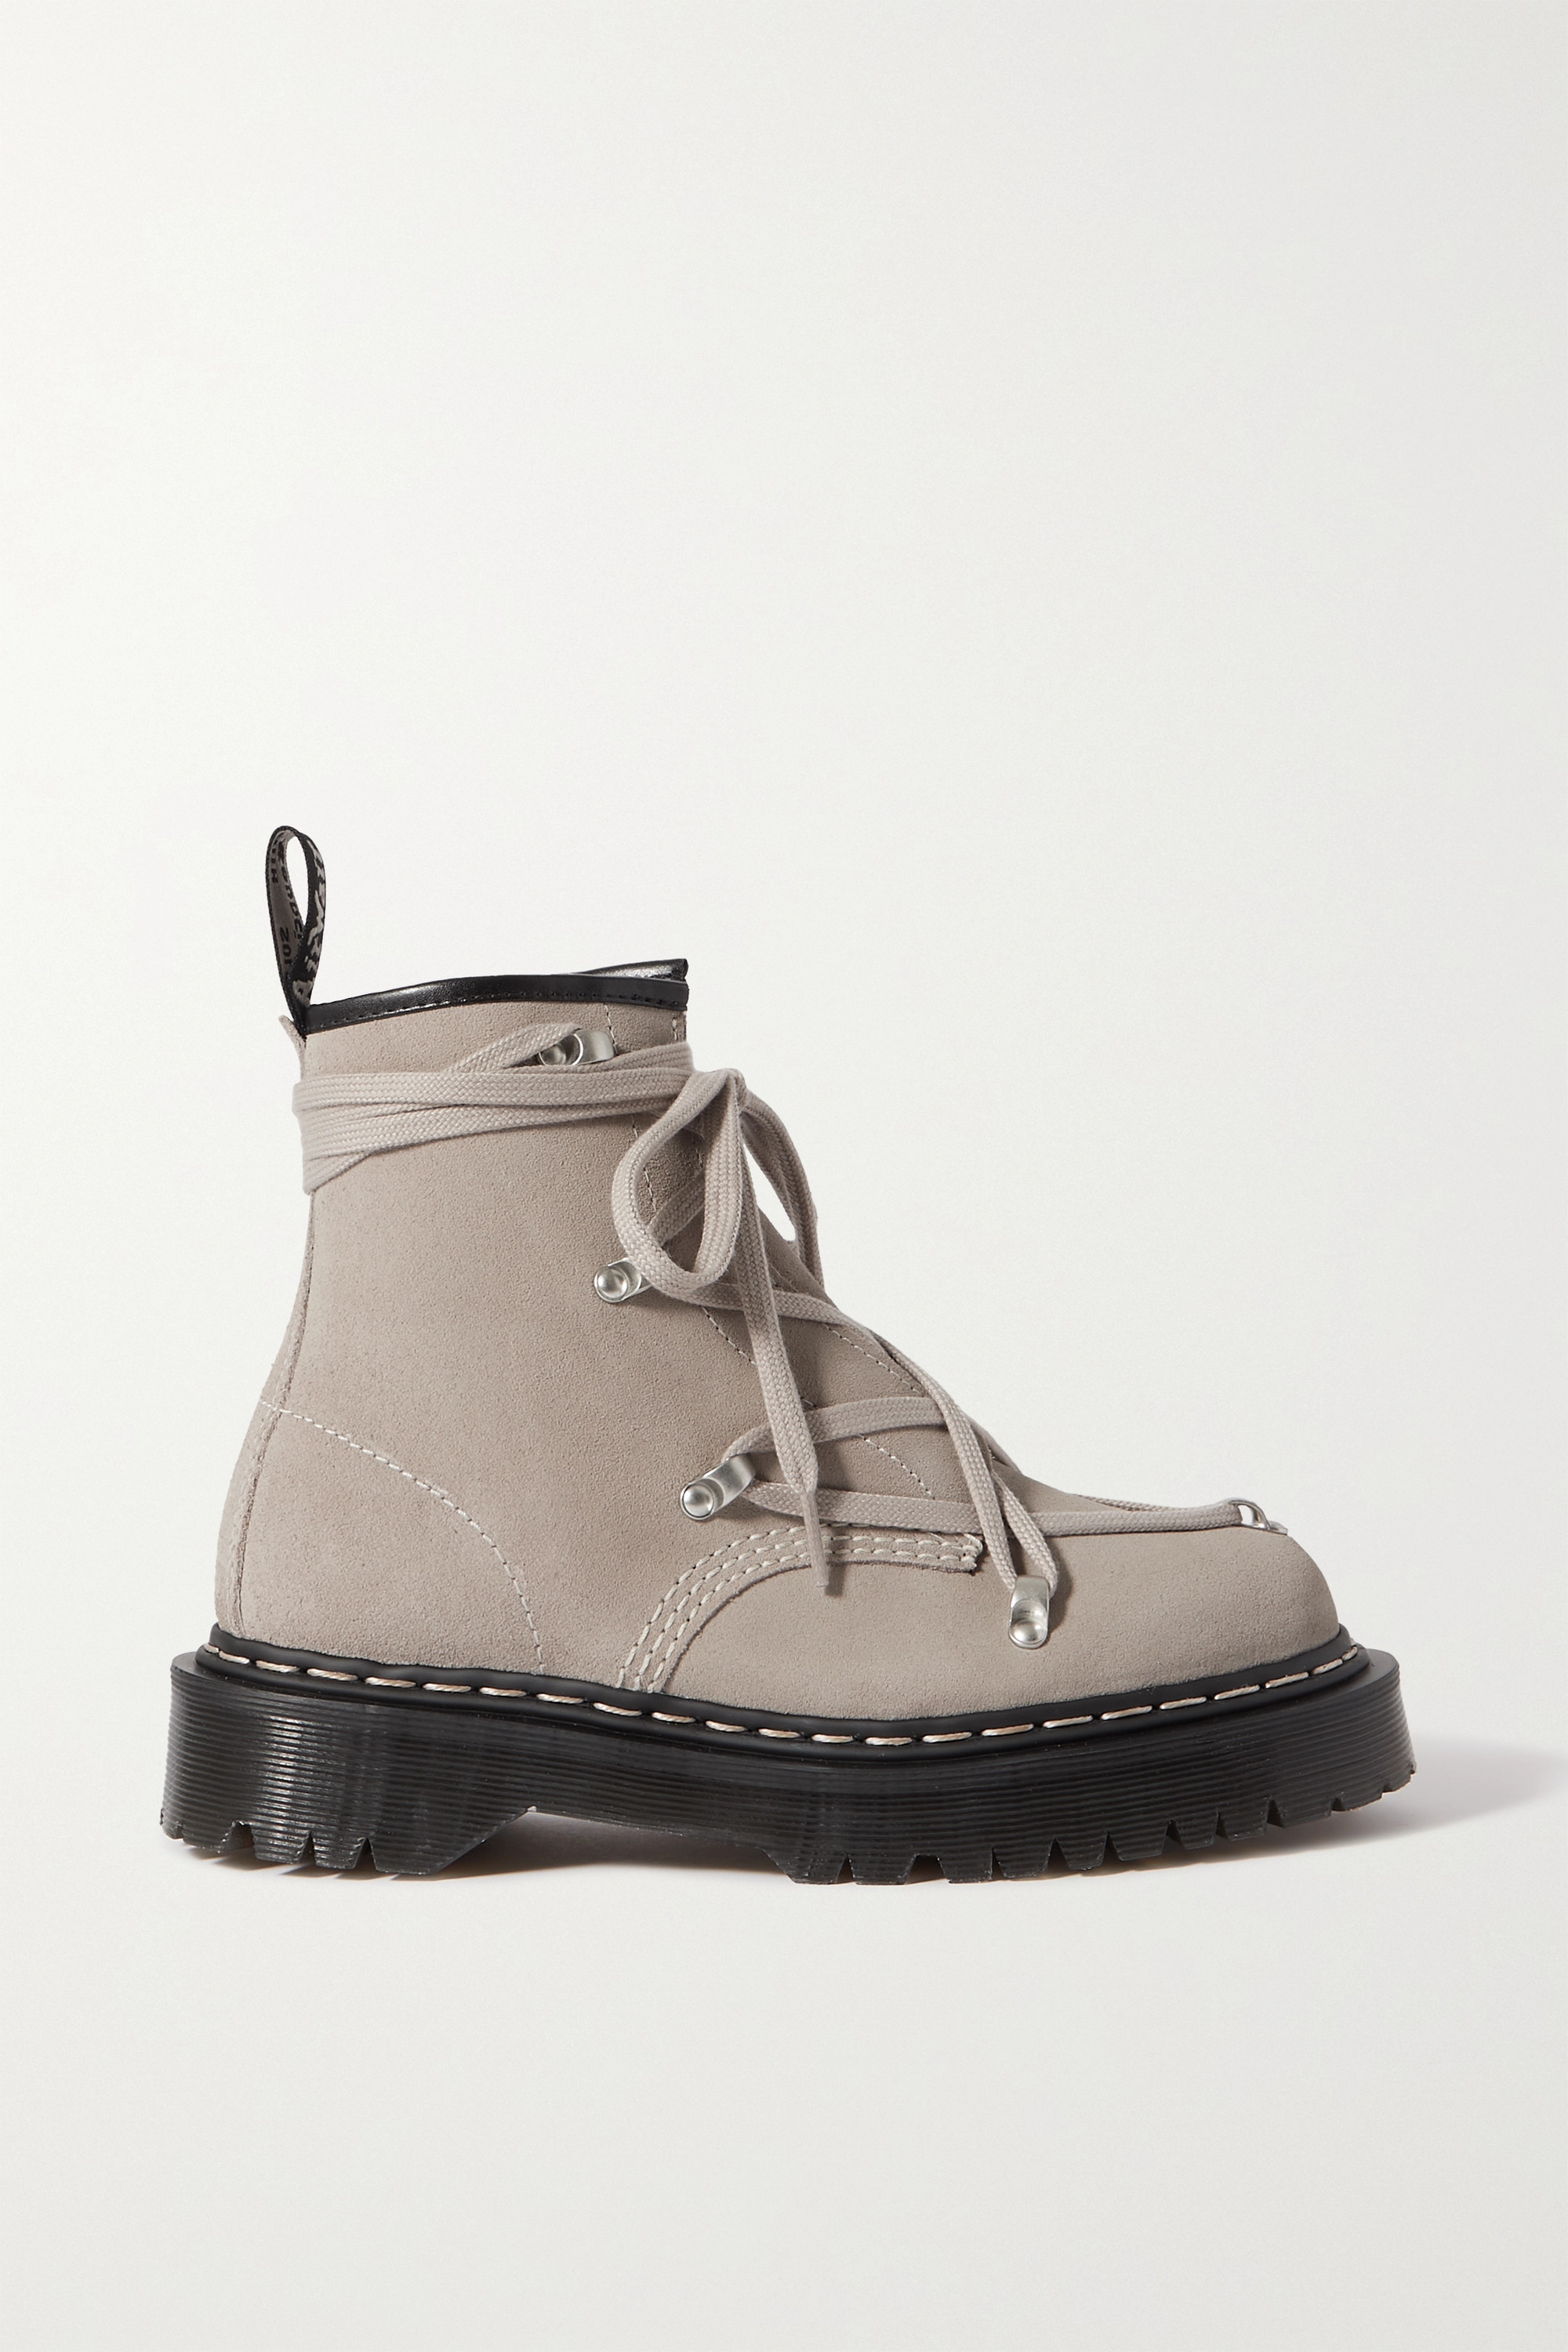 Rick Owens - + Dr. Martens 1460 Bex suede ankle boots